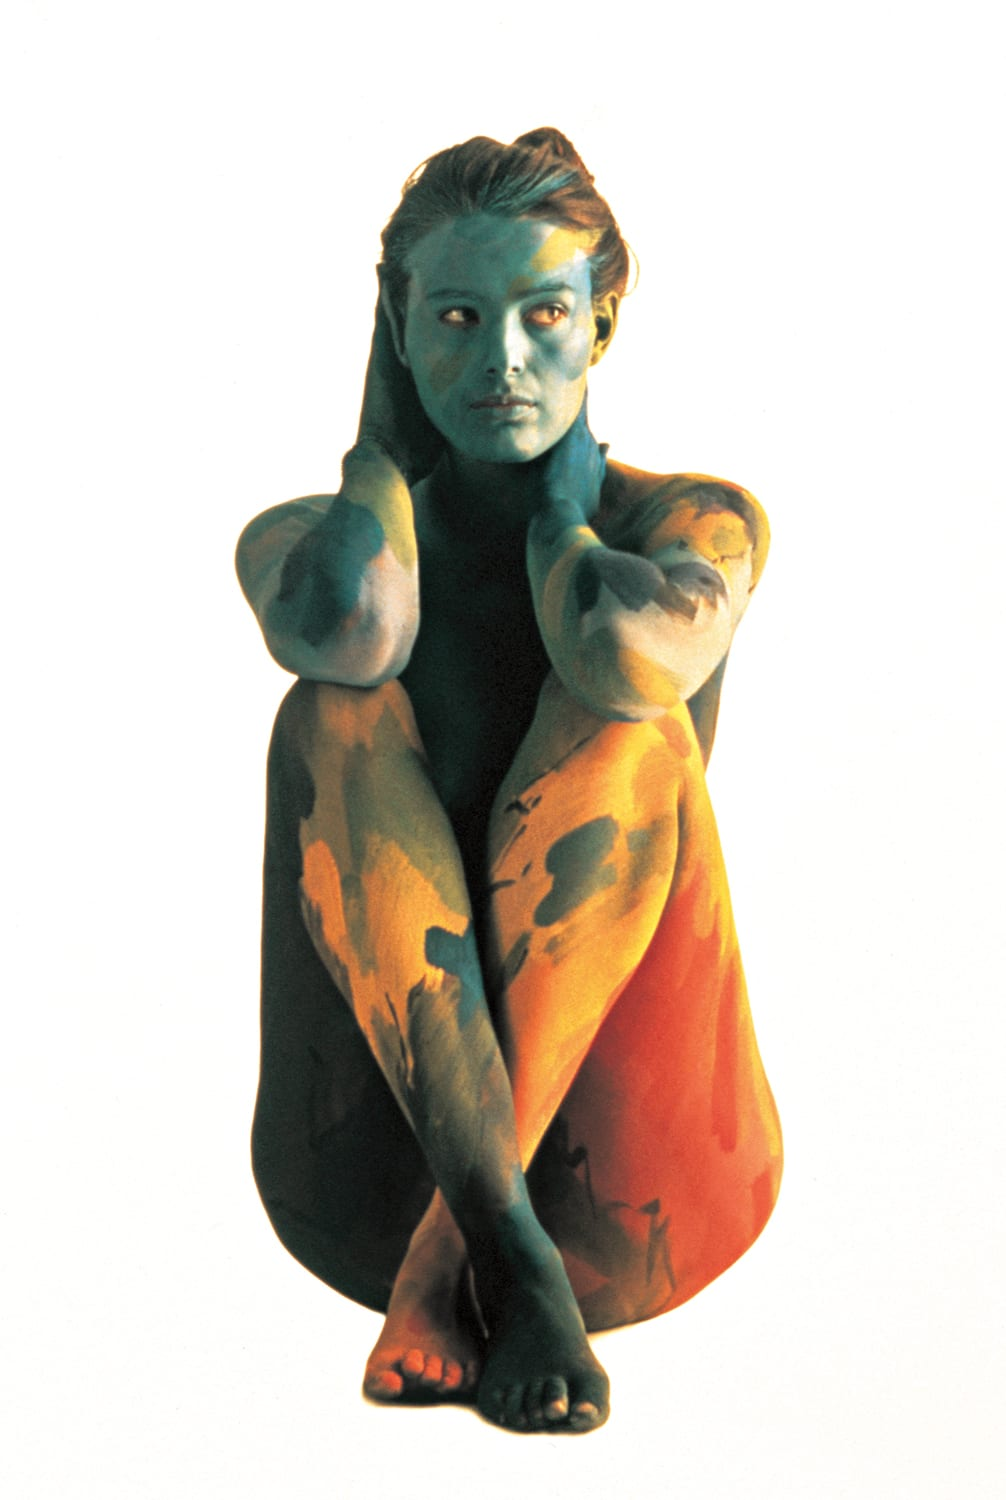 Roberto Edwards, Concepción Balmes, Chile, Cuerpos Pintados (Painted Bodies)